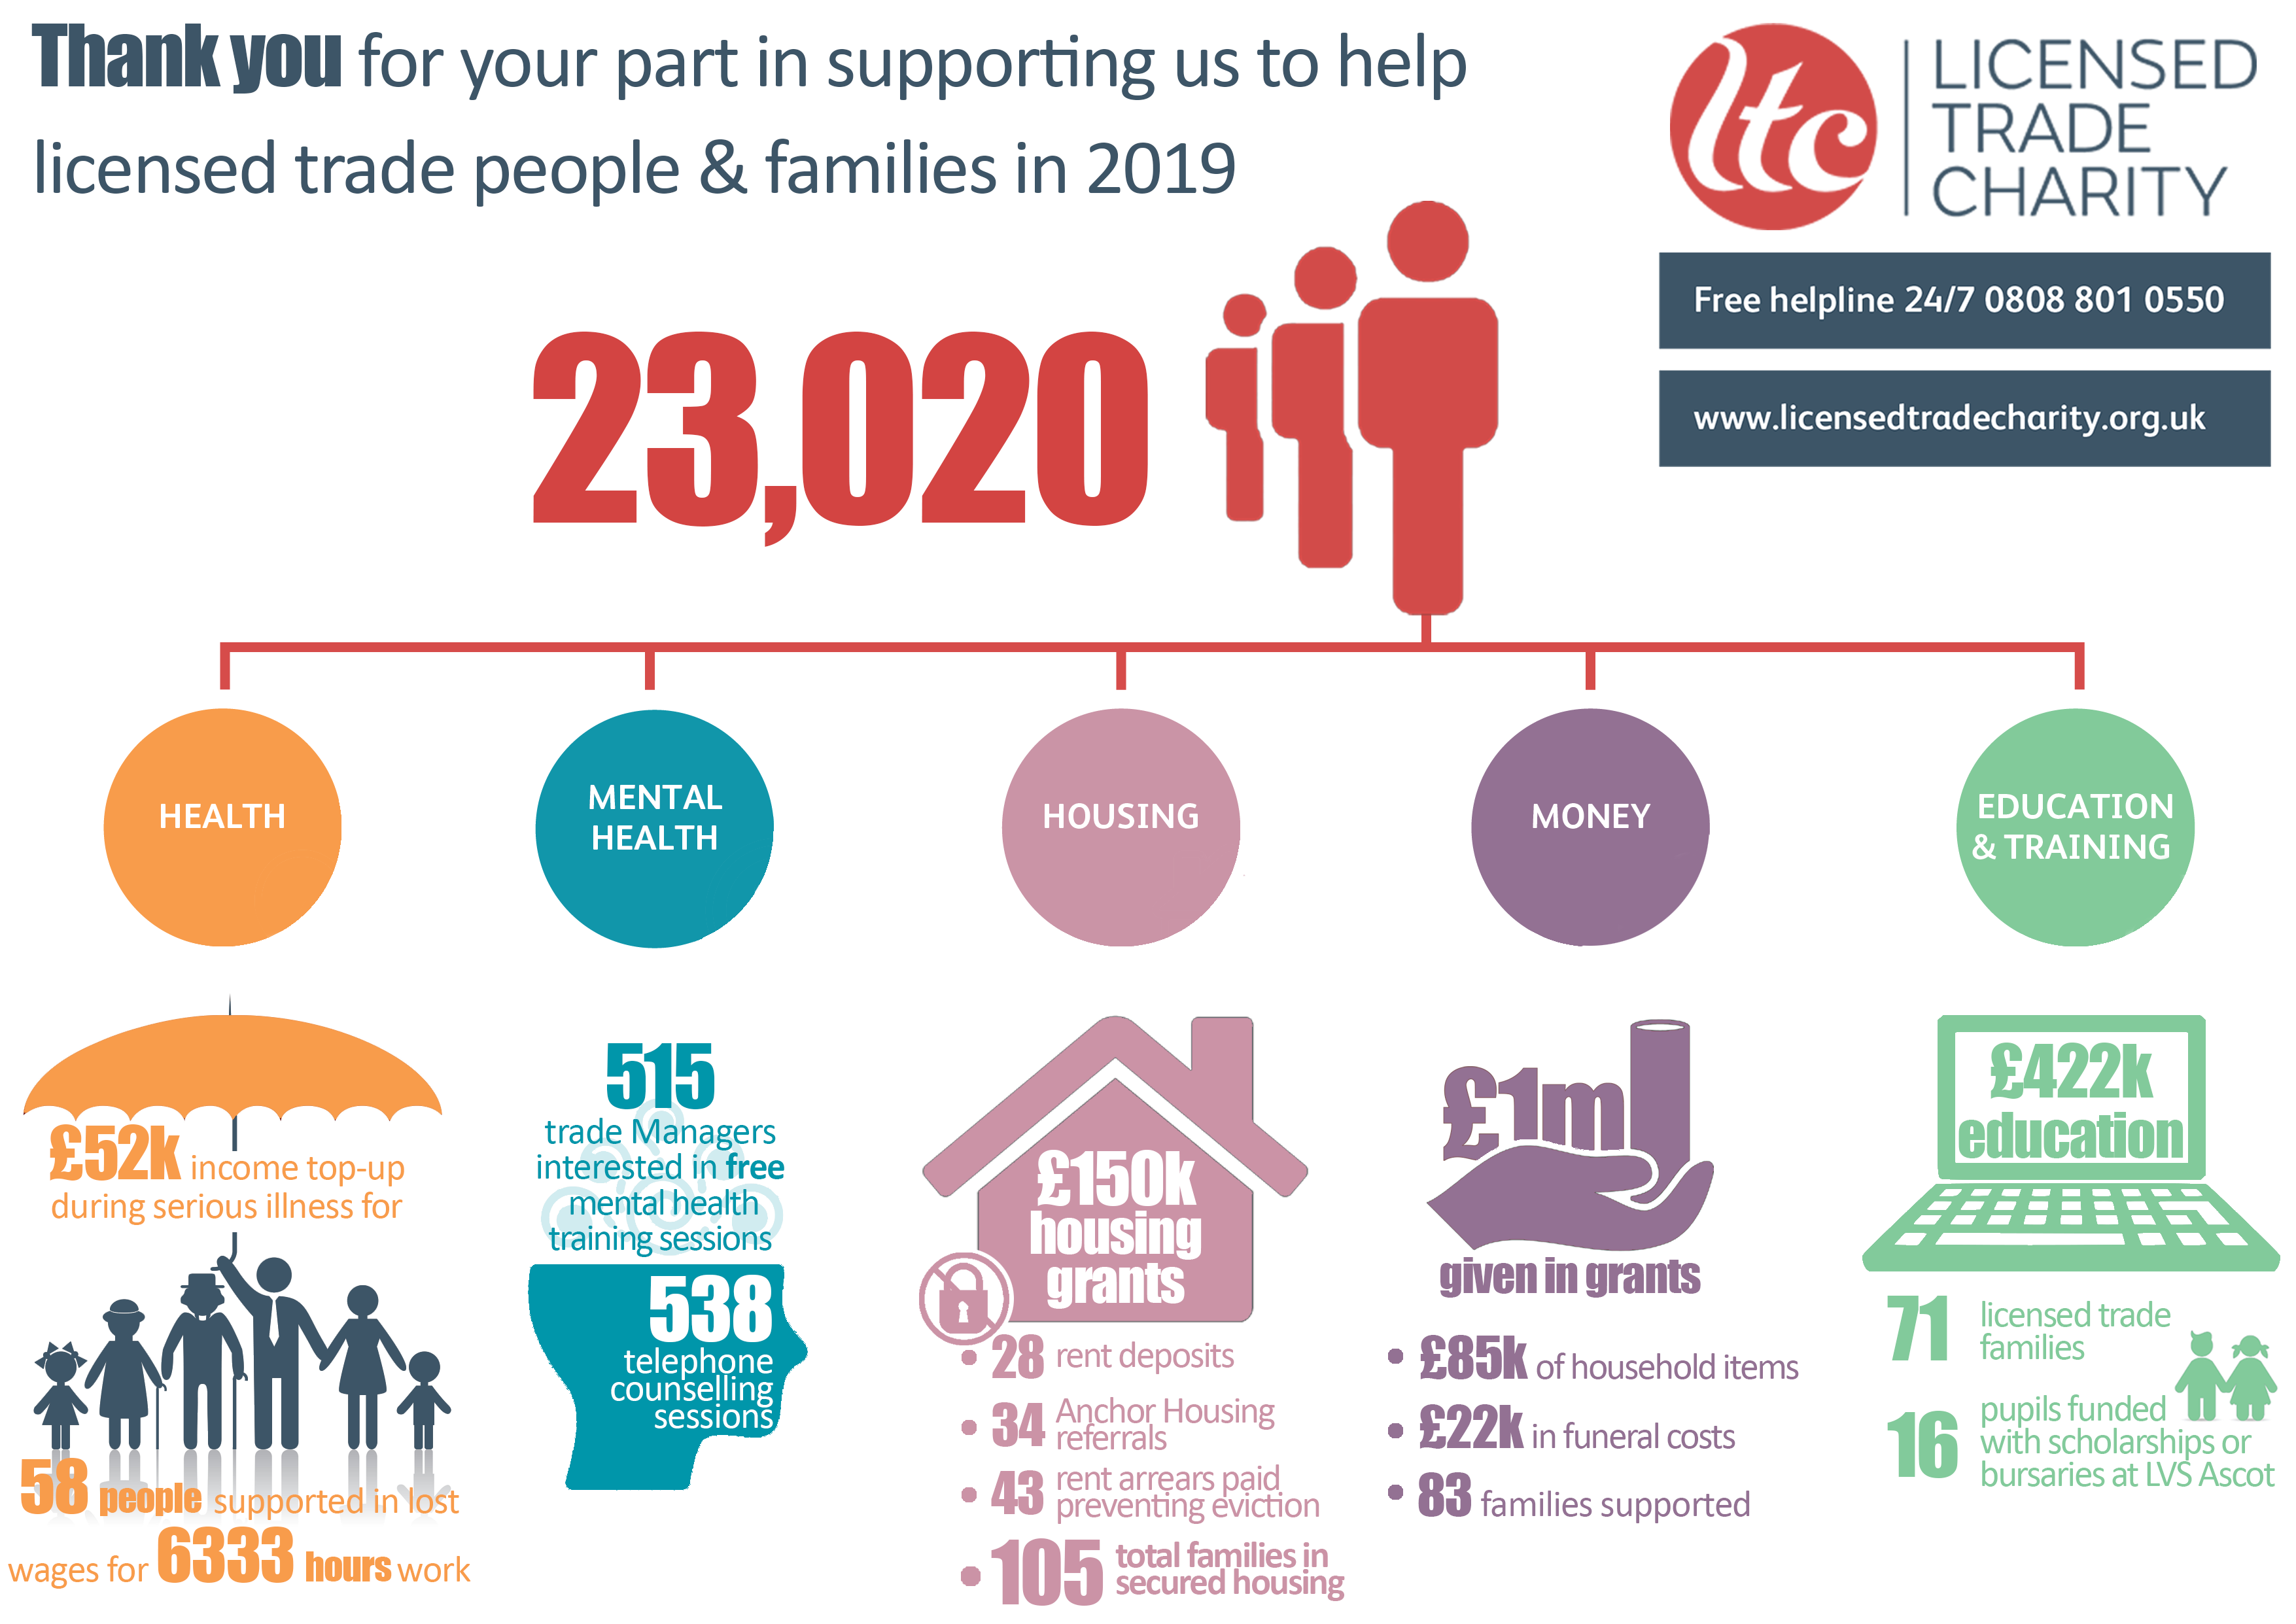 how the licensed trade charity supported the trade in 2019